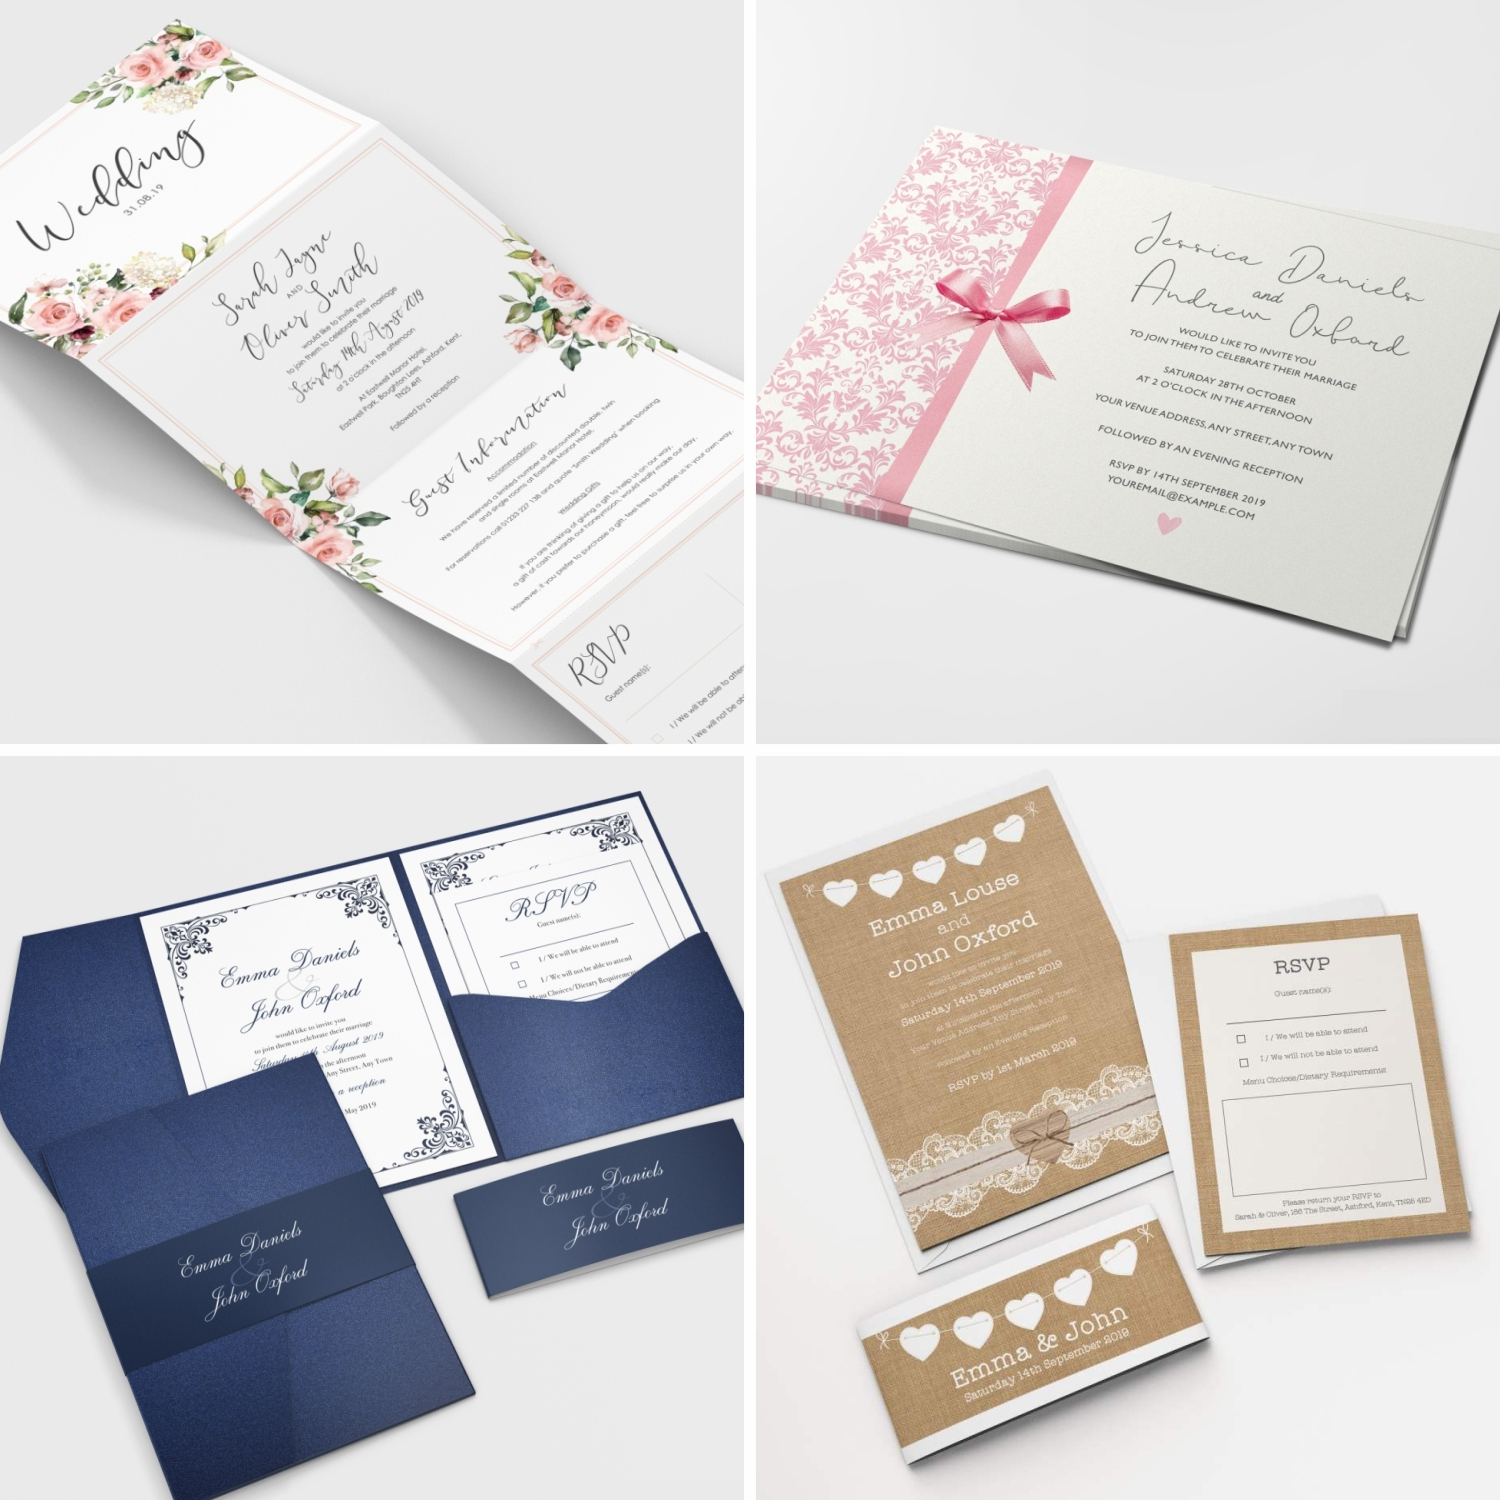 Details About Personalised Wedding Invitations Invites Rsvp Cards Day Evening Free Envelopes